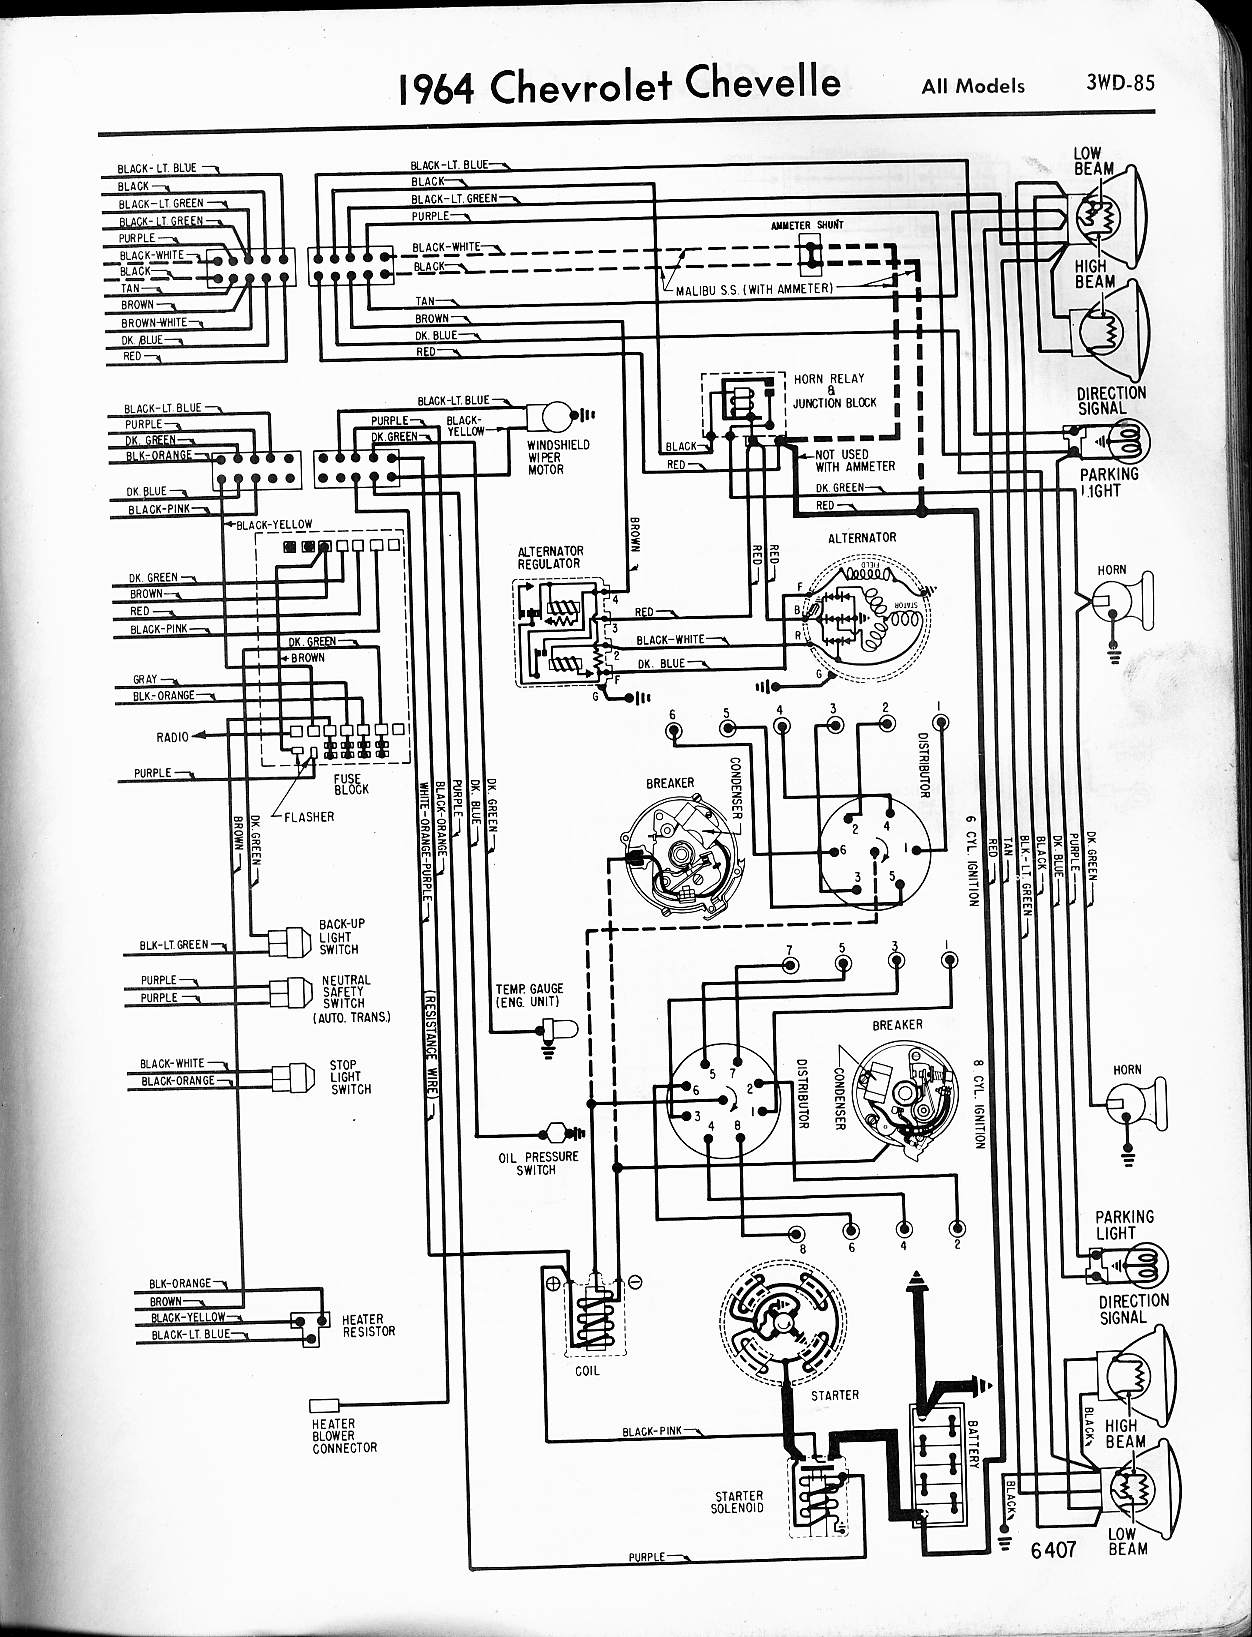 1964 gm ignition wiring diagram 57 - 65 chevy wiring diagrams 1964 f85 oldsmo gm painless wiring diagram for a oilsmobile